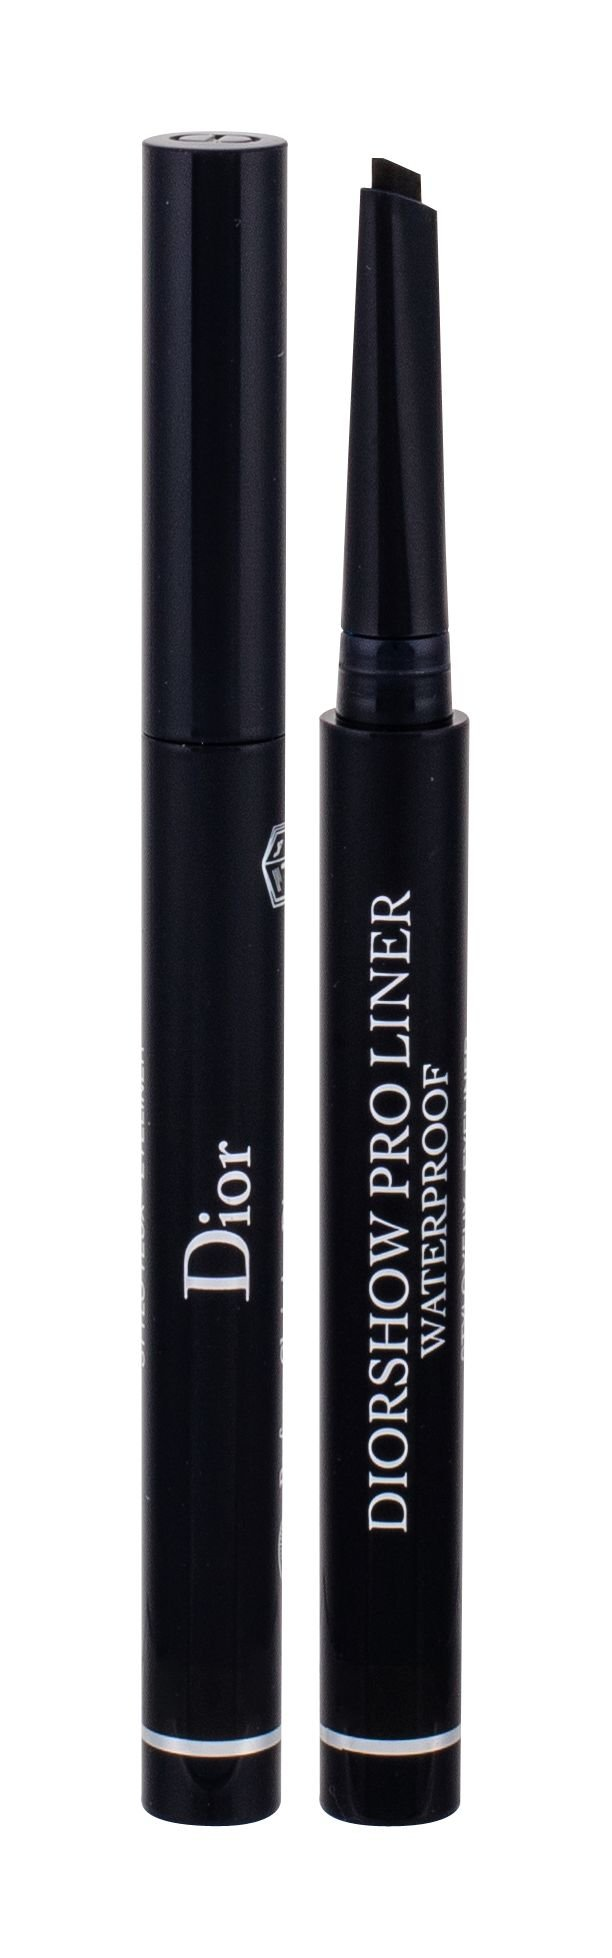 Christian Dior Diorshow Cosmetic 0,3ml 092 Pro Black